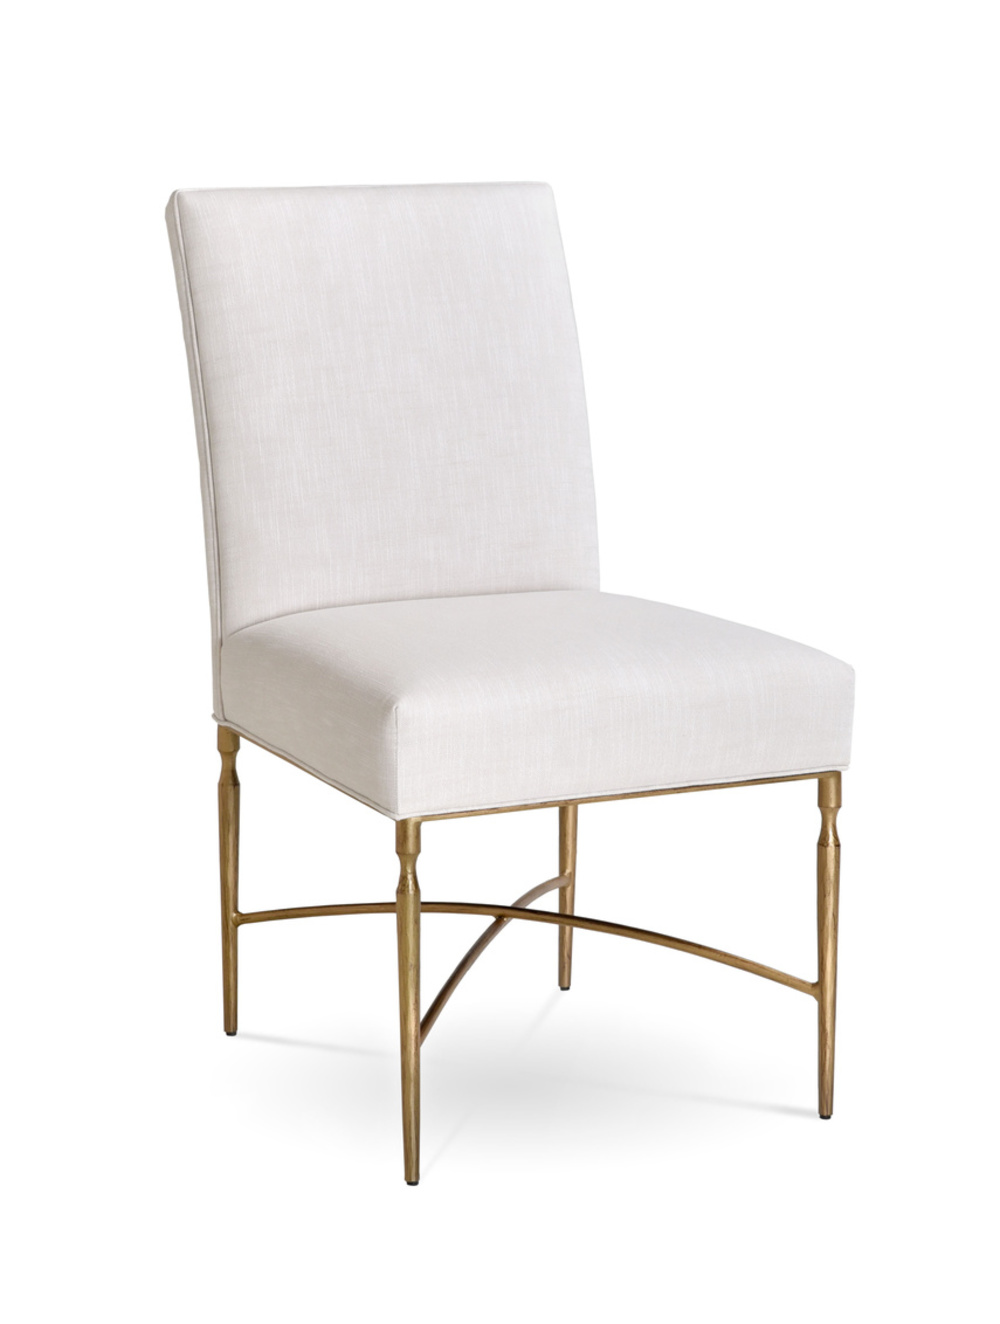 Charleston Forge - Calico Bay Dining Chair